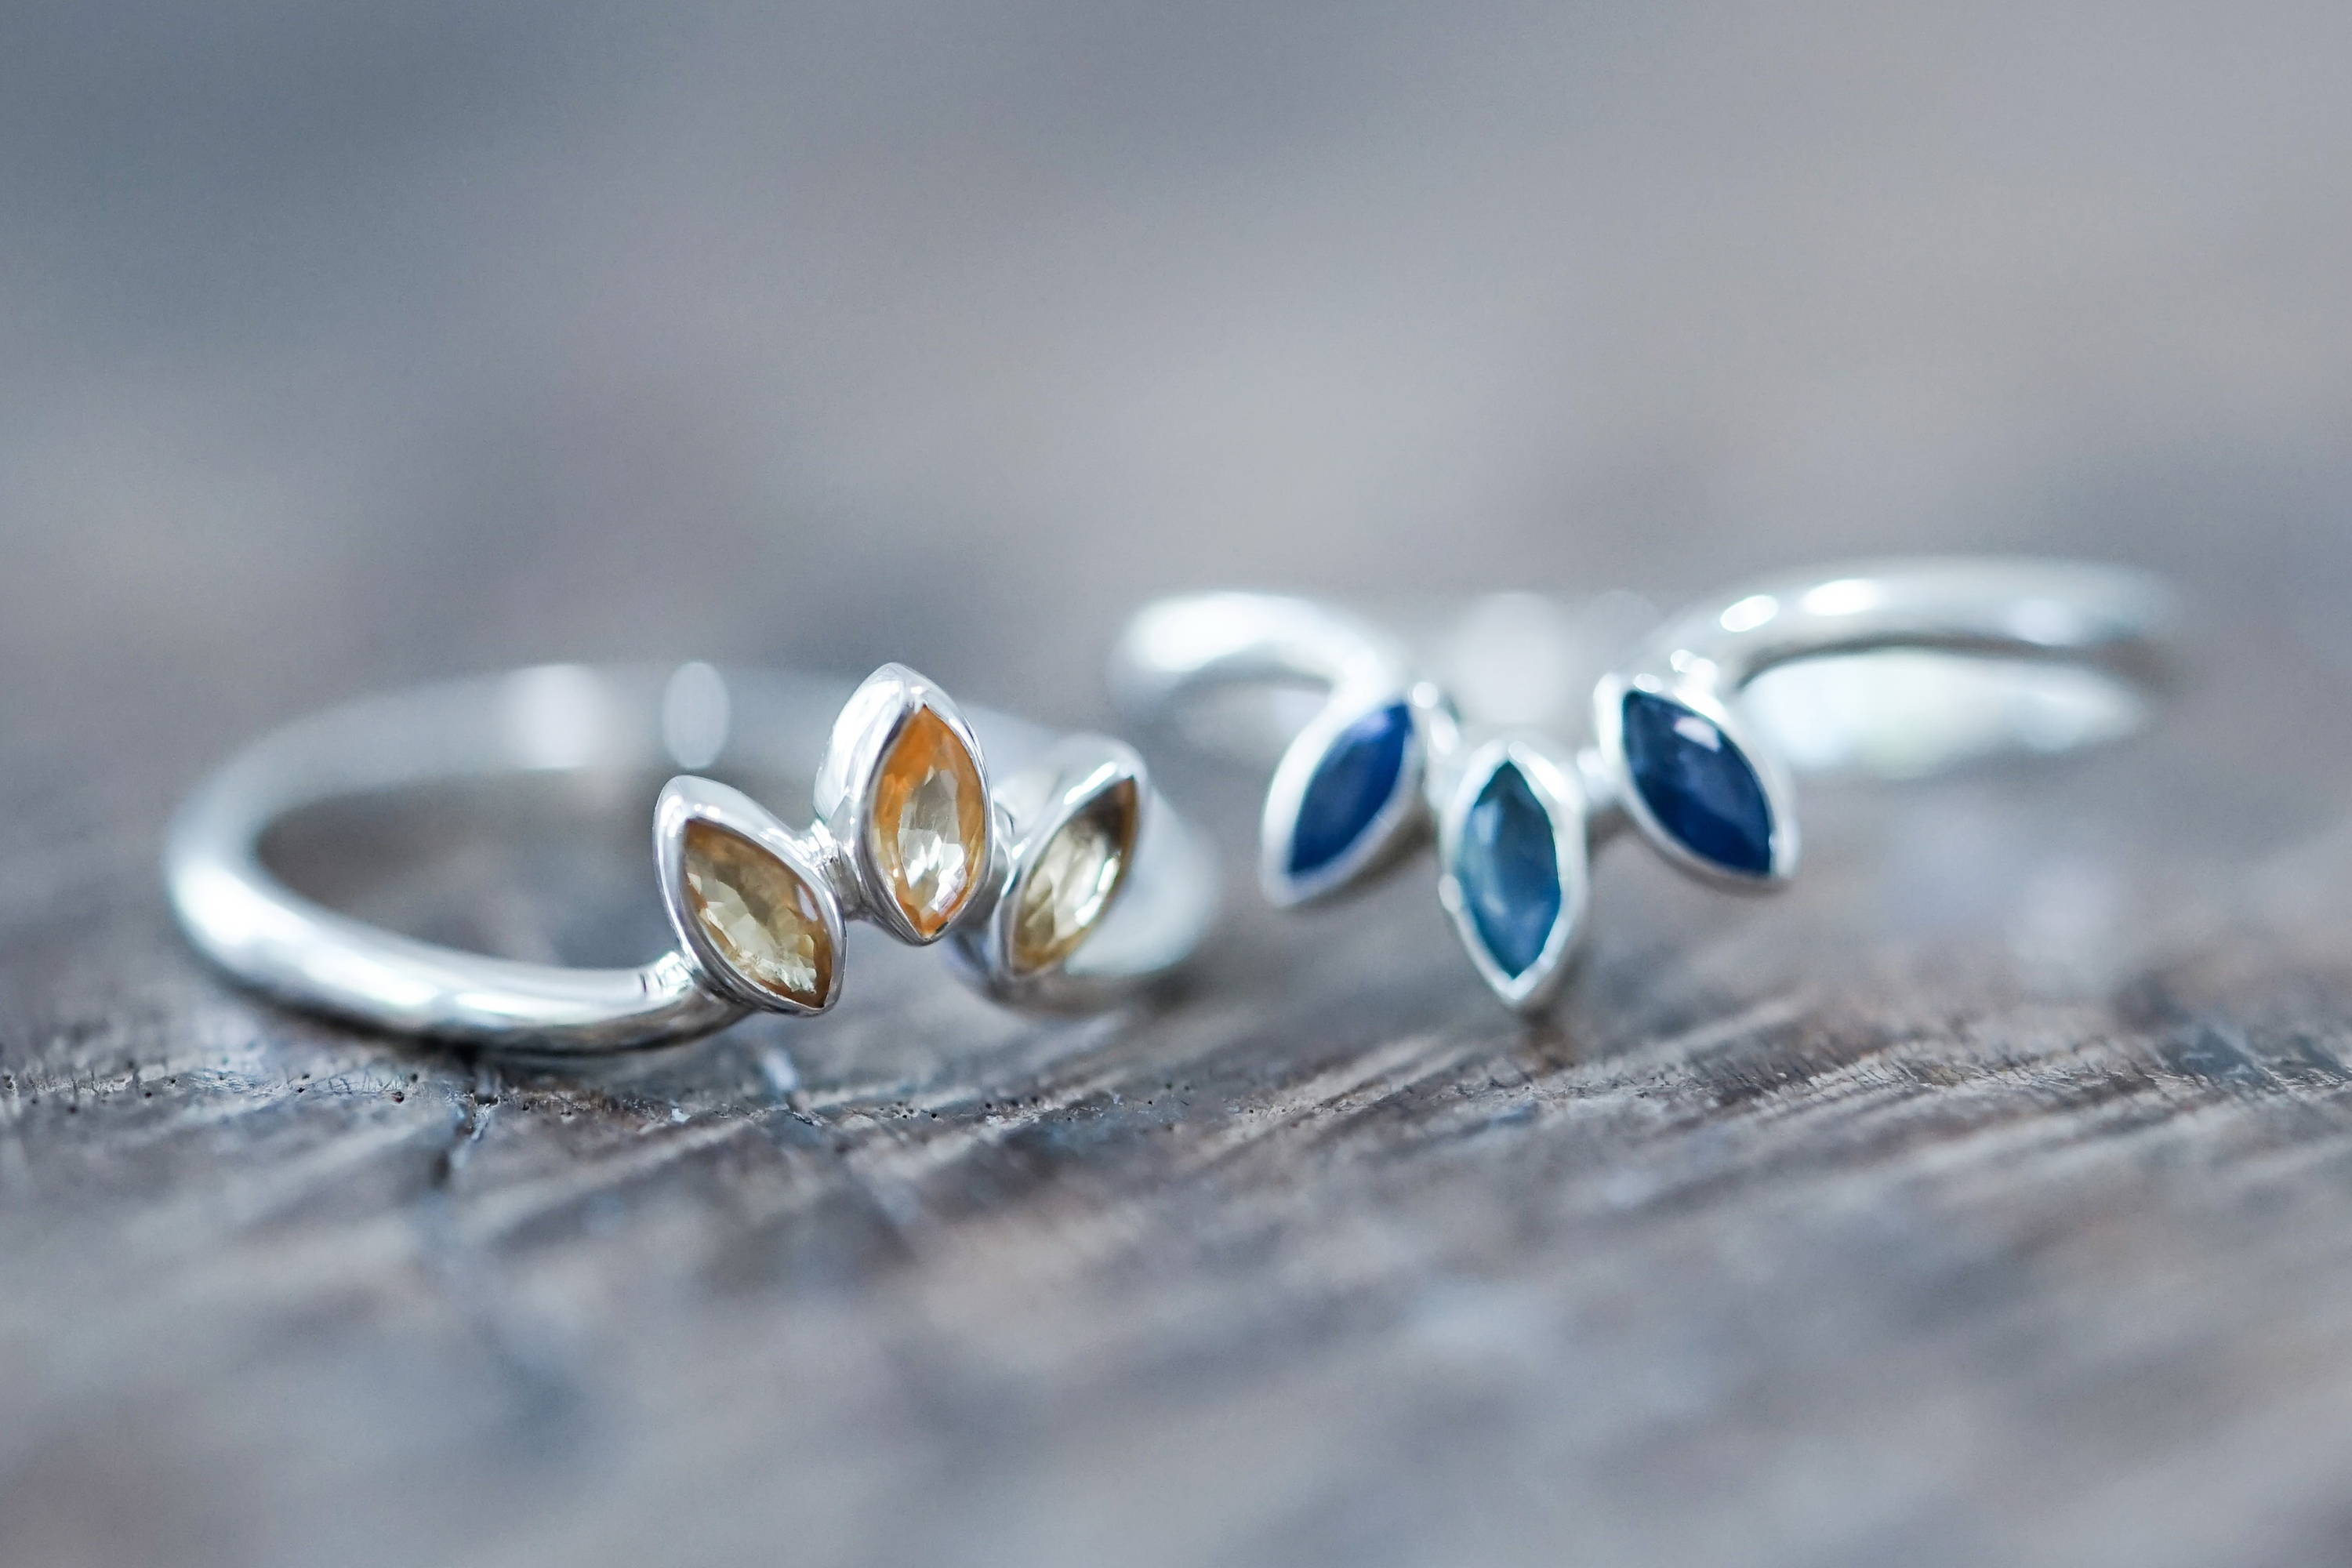 Recycled silver stacking rings with sapphires